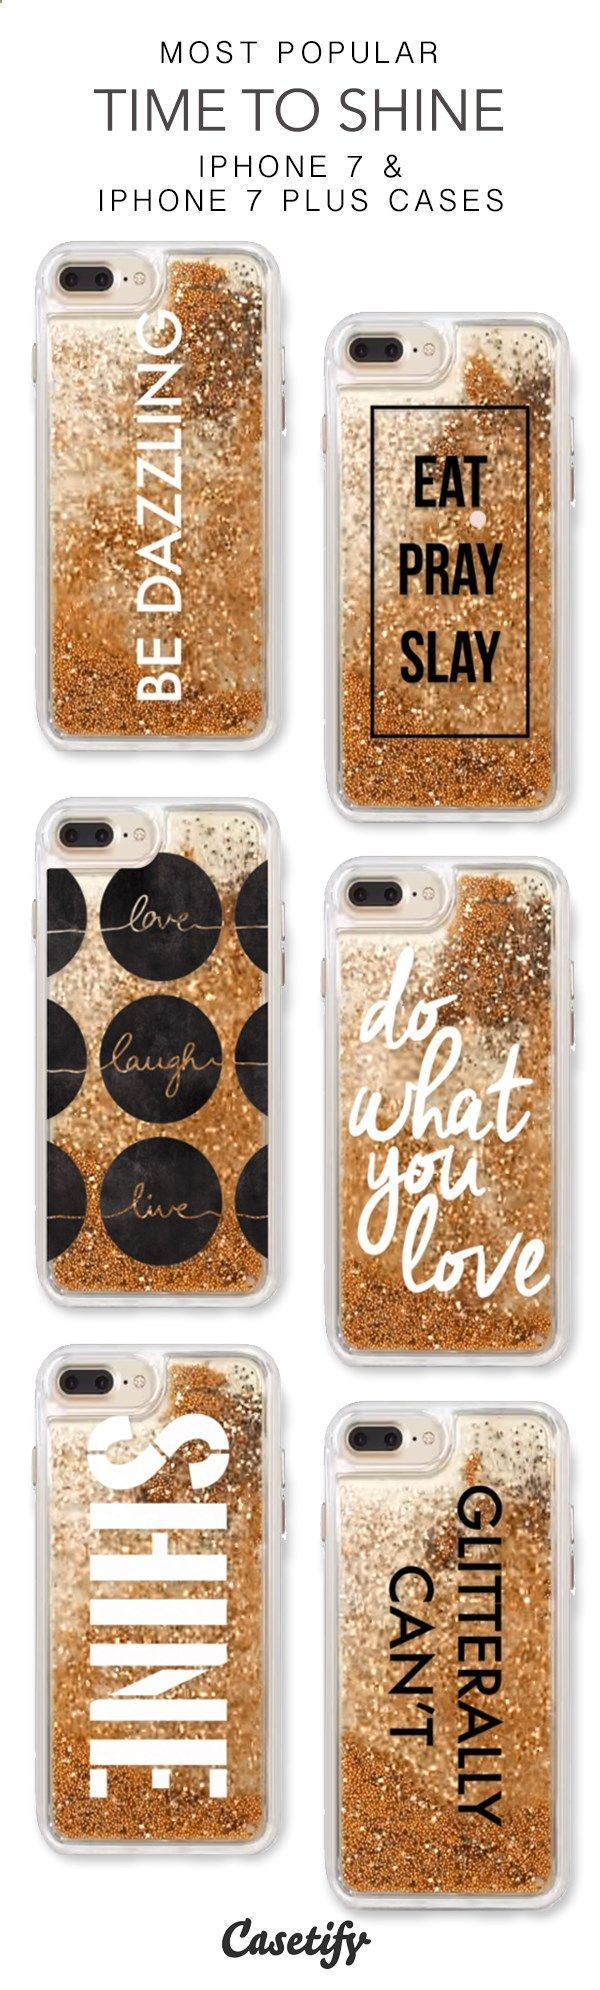 Most Popular Time To Shine iPhone 7 Cases iPhone 7 Plus Cases. More glitter iPhone case here > https://www.casetify.com/en_US/collections/iphone-7-glitter-cases#/?vc=l71mrMBQxC